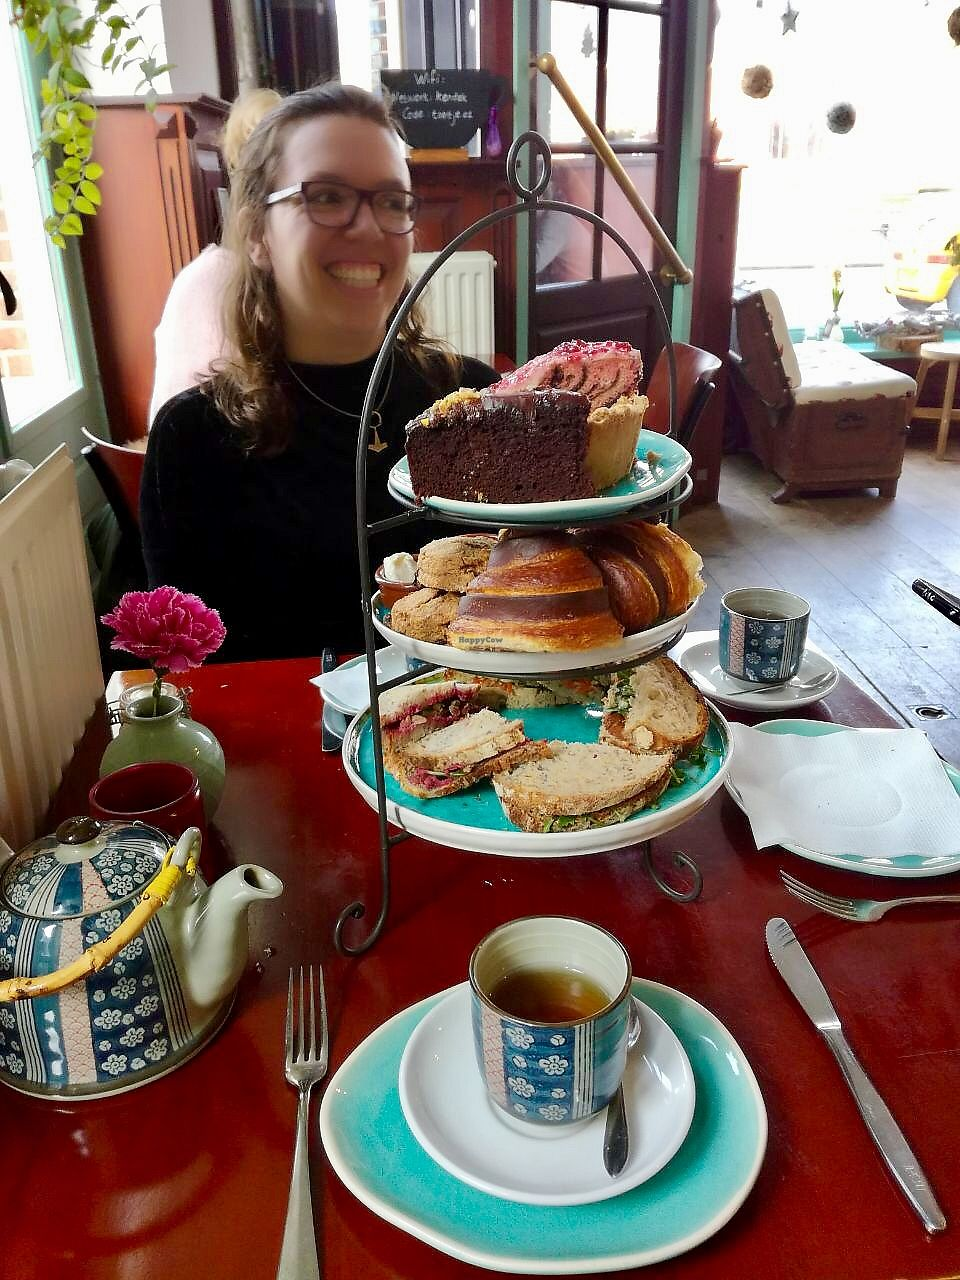 """Photo of Koffie ende Koeck  by <a href=""""/members/profile/happyowl"""">happyowl</a> <br/>High tea <br/> May 23, 2018  - <a href='/contact/abuse/image/46128/403892'>Report</a>"""